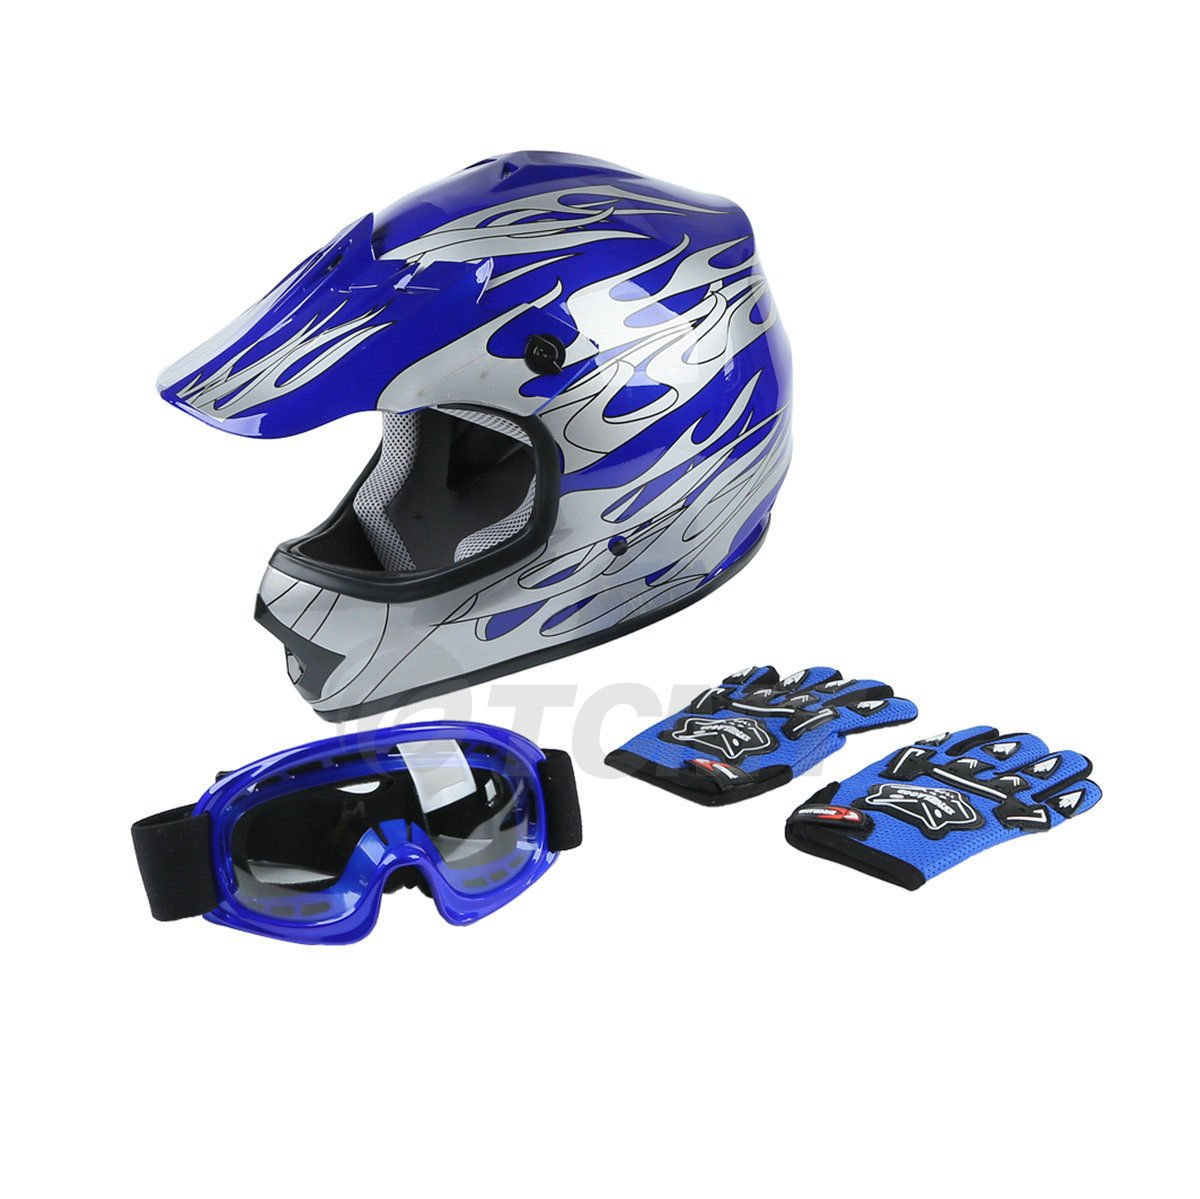 TCMT Dot Youth & Kids Motocross Offroad Street Helmet Blue Flame Motorcycle Helmet Silver Dirt Bike Helmet+Goggles+gloves M XF270206-M